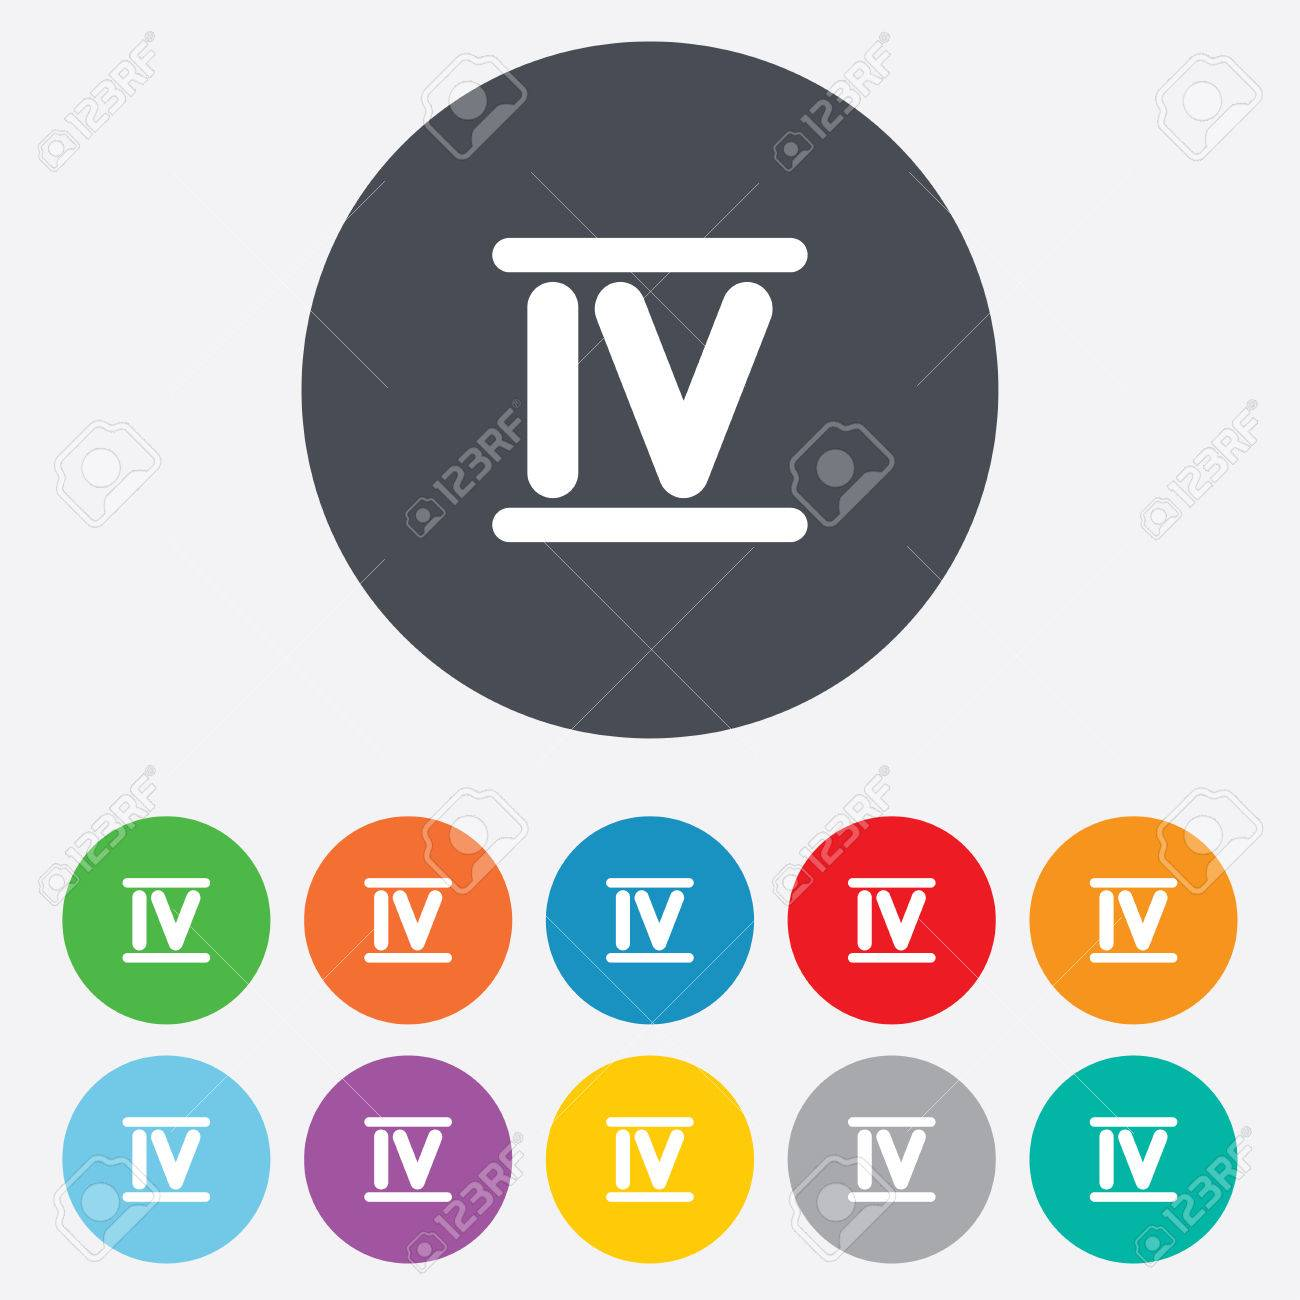 Worksheet Roman Numerals Four roman numeral four sign icon number symbol round colourful 11 buttons